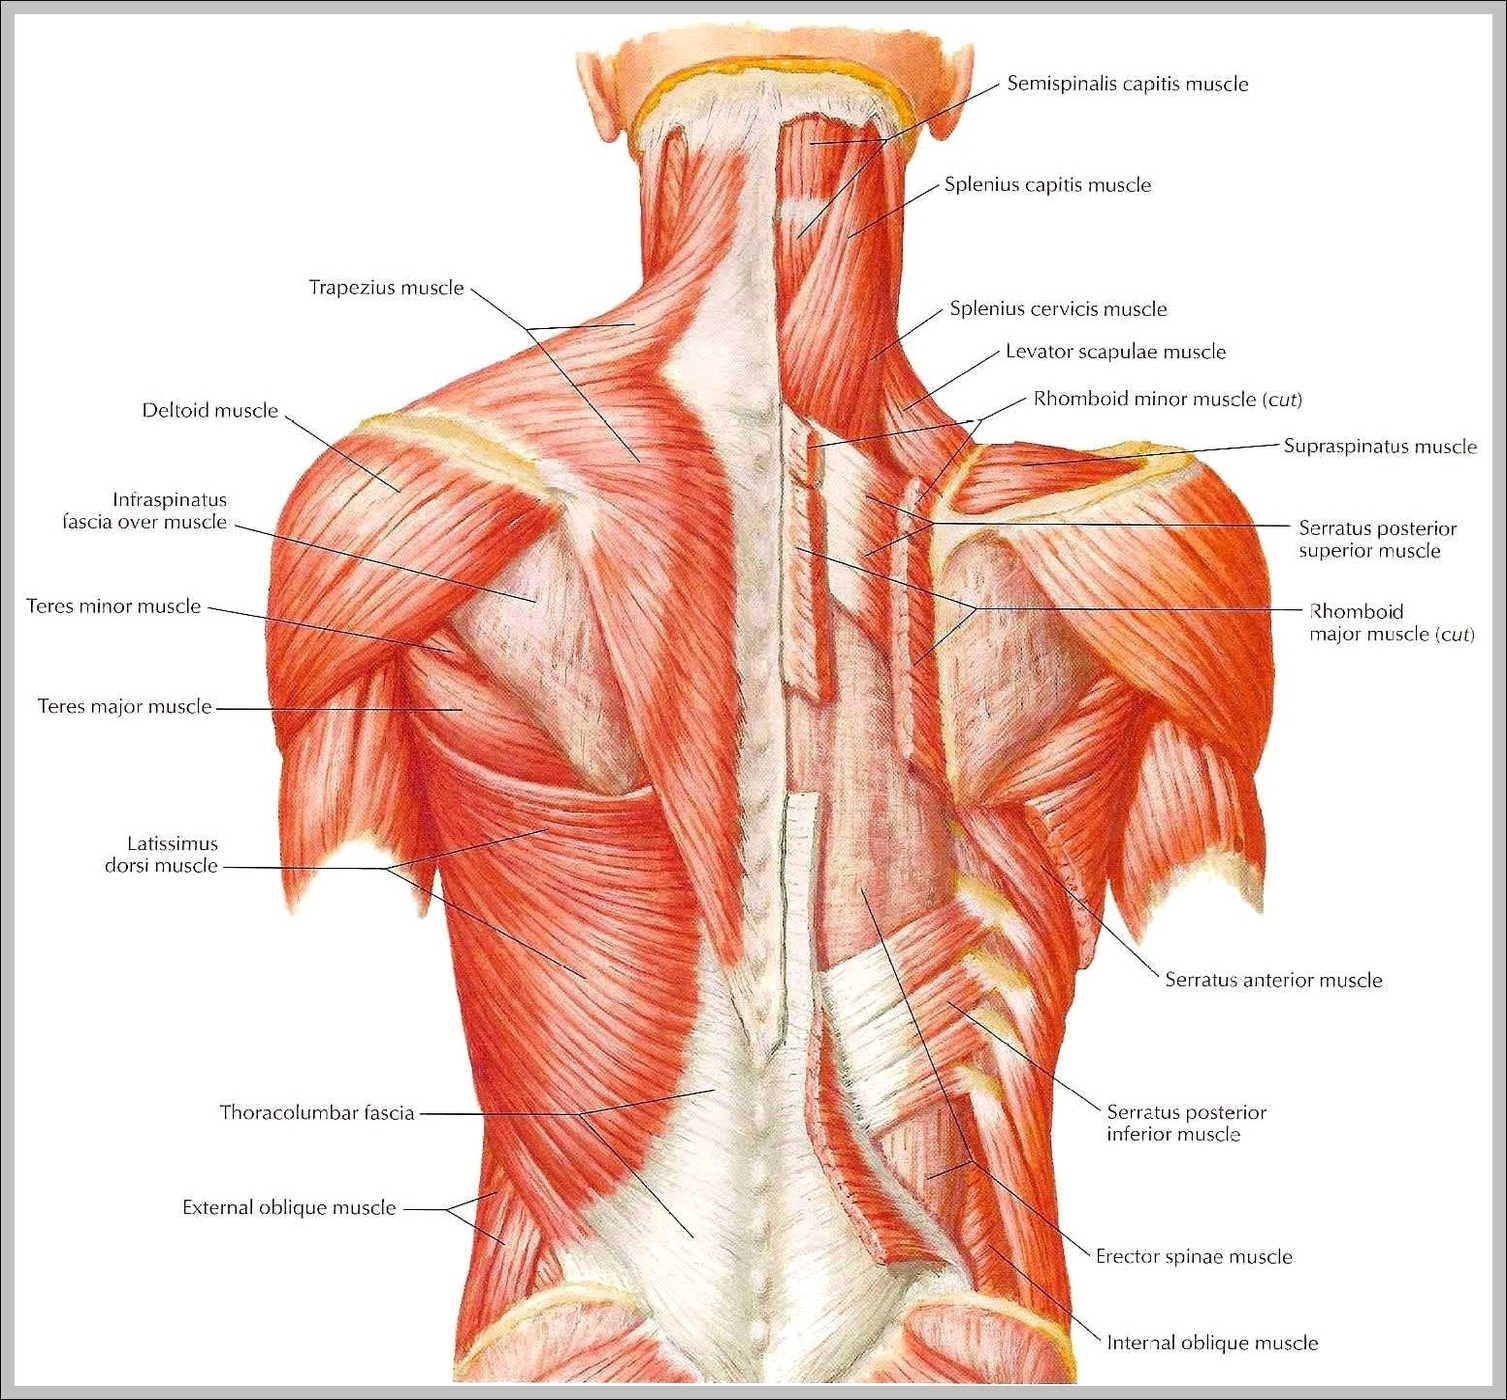 Picture of muscles in back graph diagram picture of muscles in back ccuart Image collections